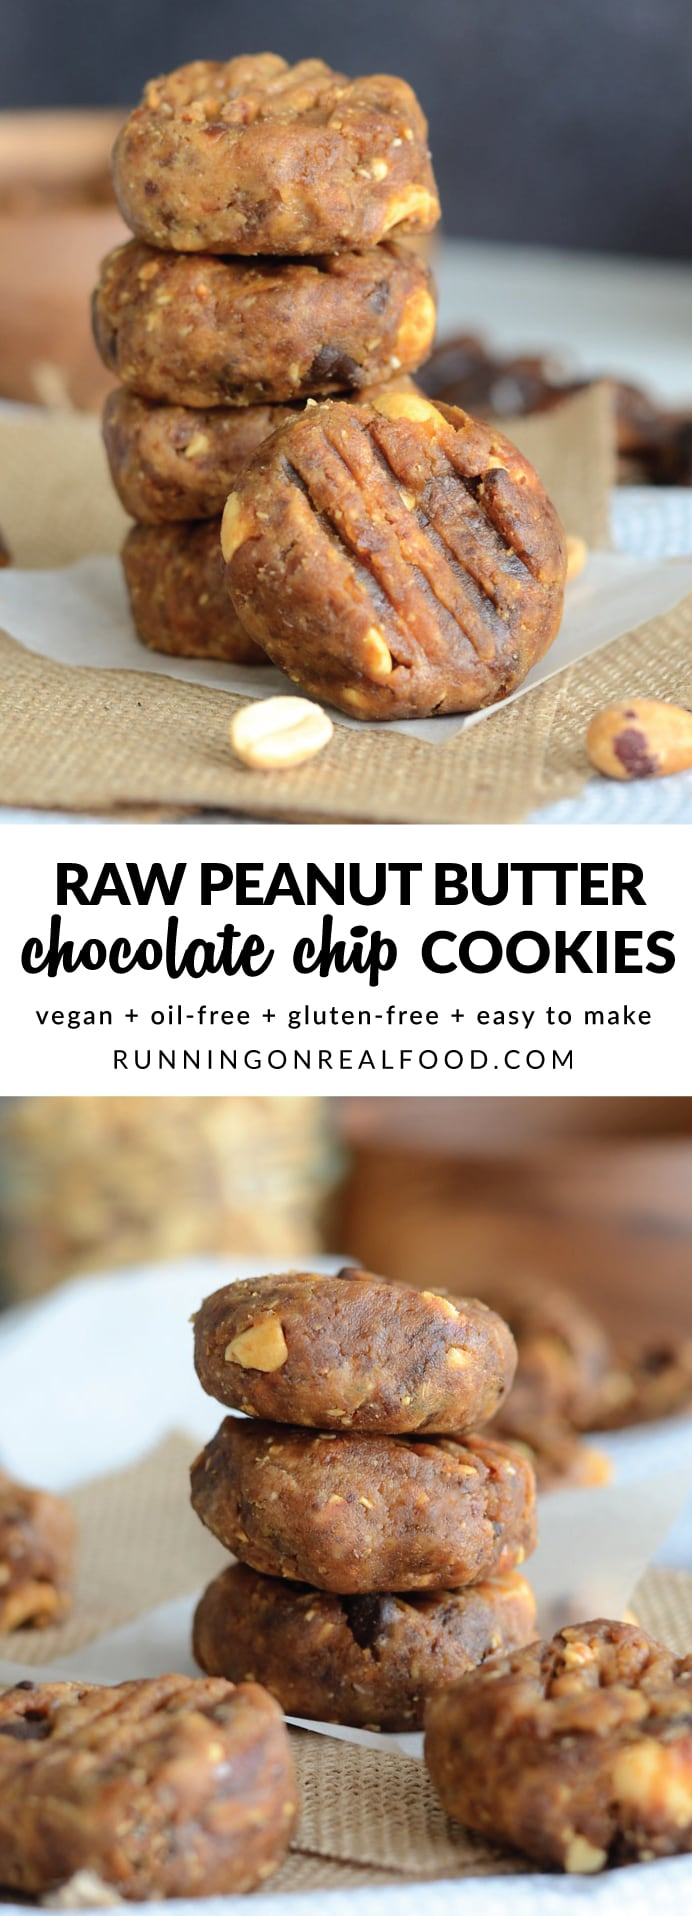 These Raw Peanut Butter Chocolate Chip Cookies take just minutes to make and taste just like raw cookie dough! Make them your own by switching up the nut butter and the add-ins. How about tahini cranberry cookies, almond butter chocolate chip or sunflower seed butter dark chocolate!! Vegan, oil-free, GF, no baking required!